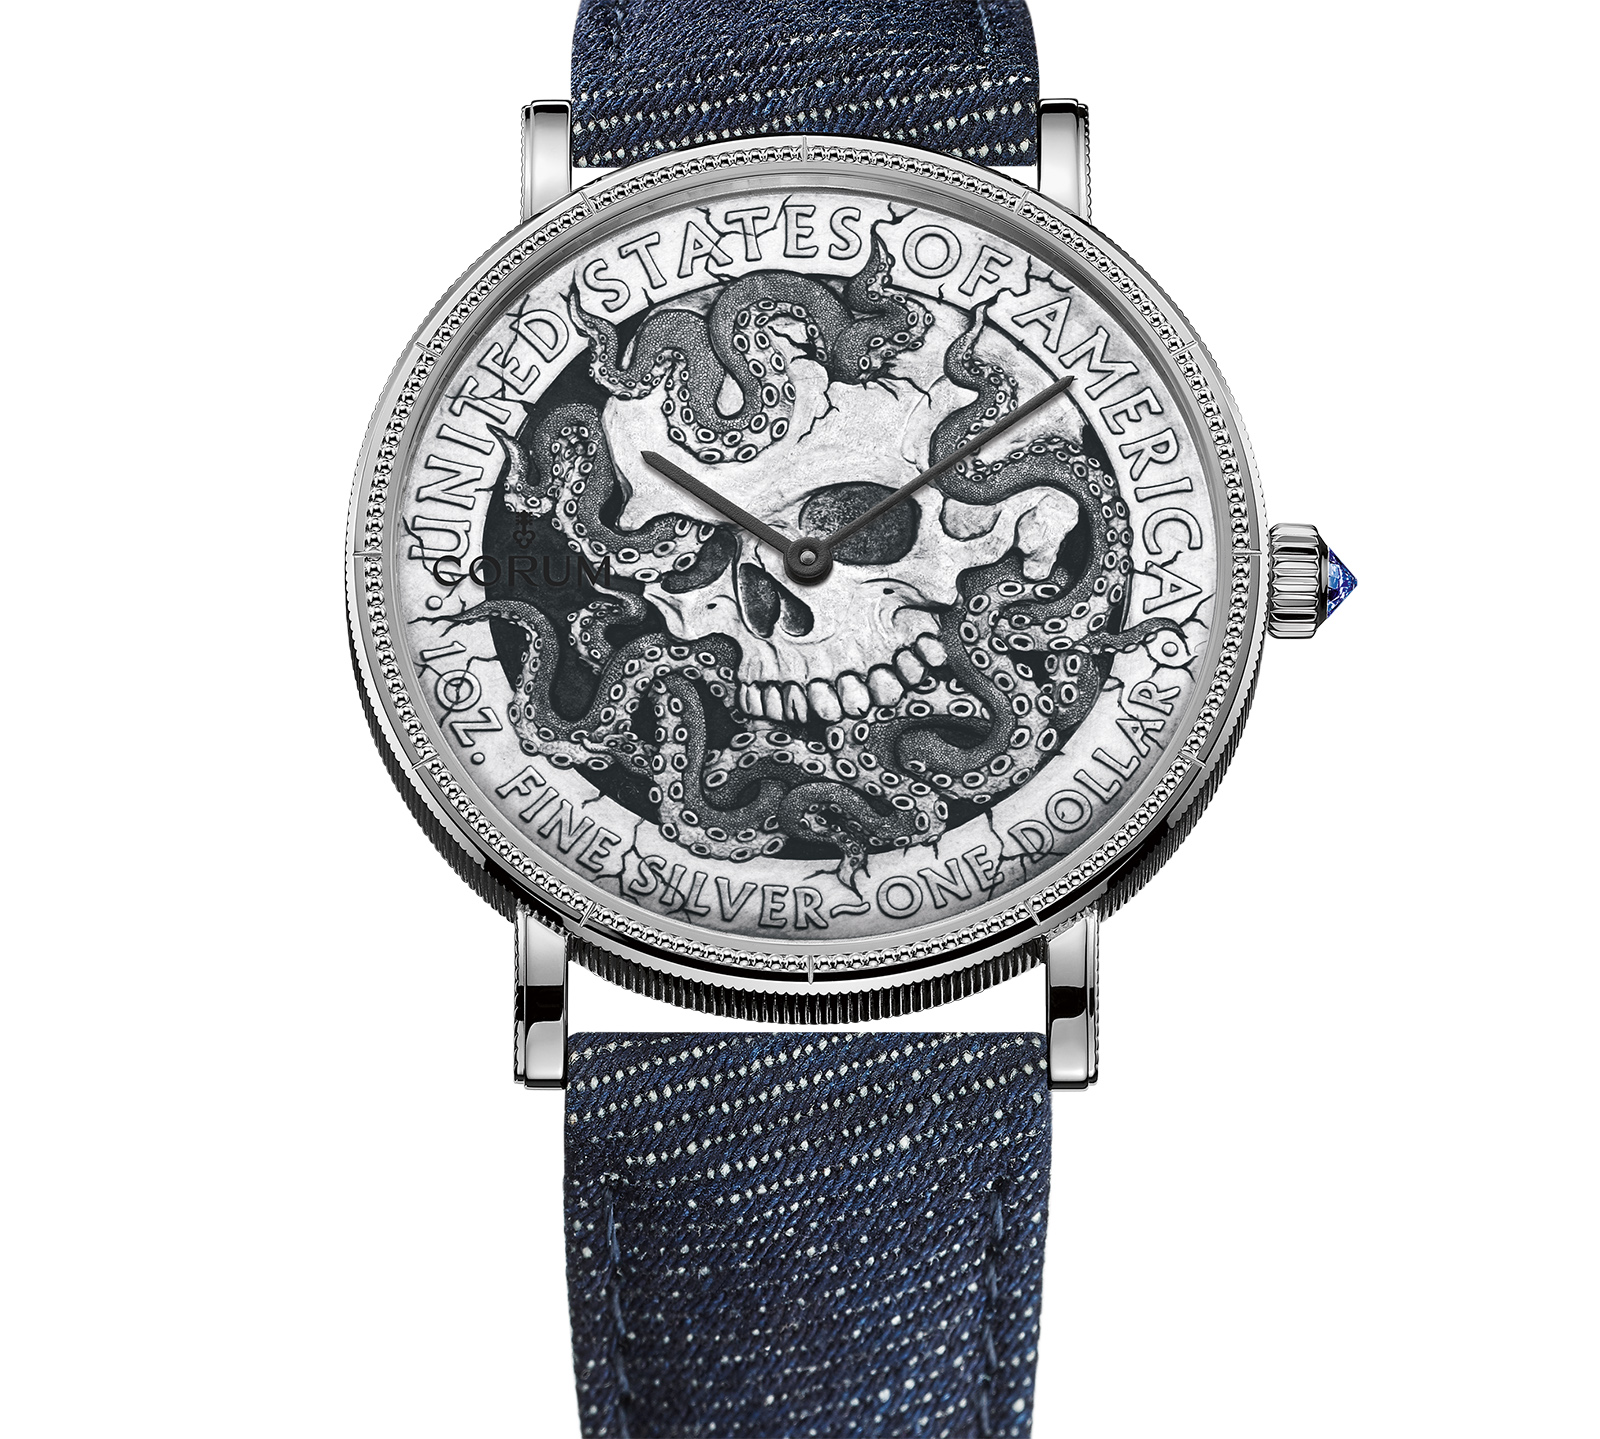 272b72de2f Each Corum Hobo Coin Watch features a certain depiction of a skull,  micro-engraved on a U.S. silver dollar. The coin is split, with the two  halves ...